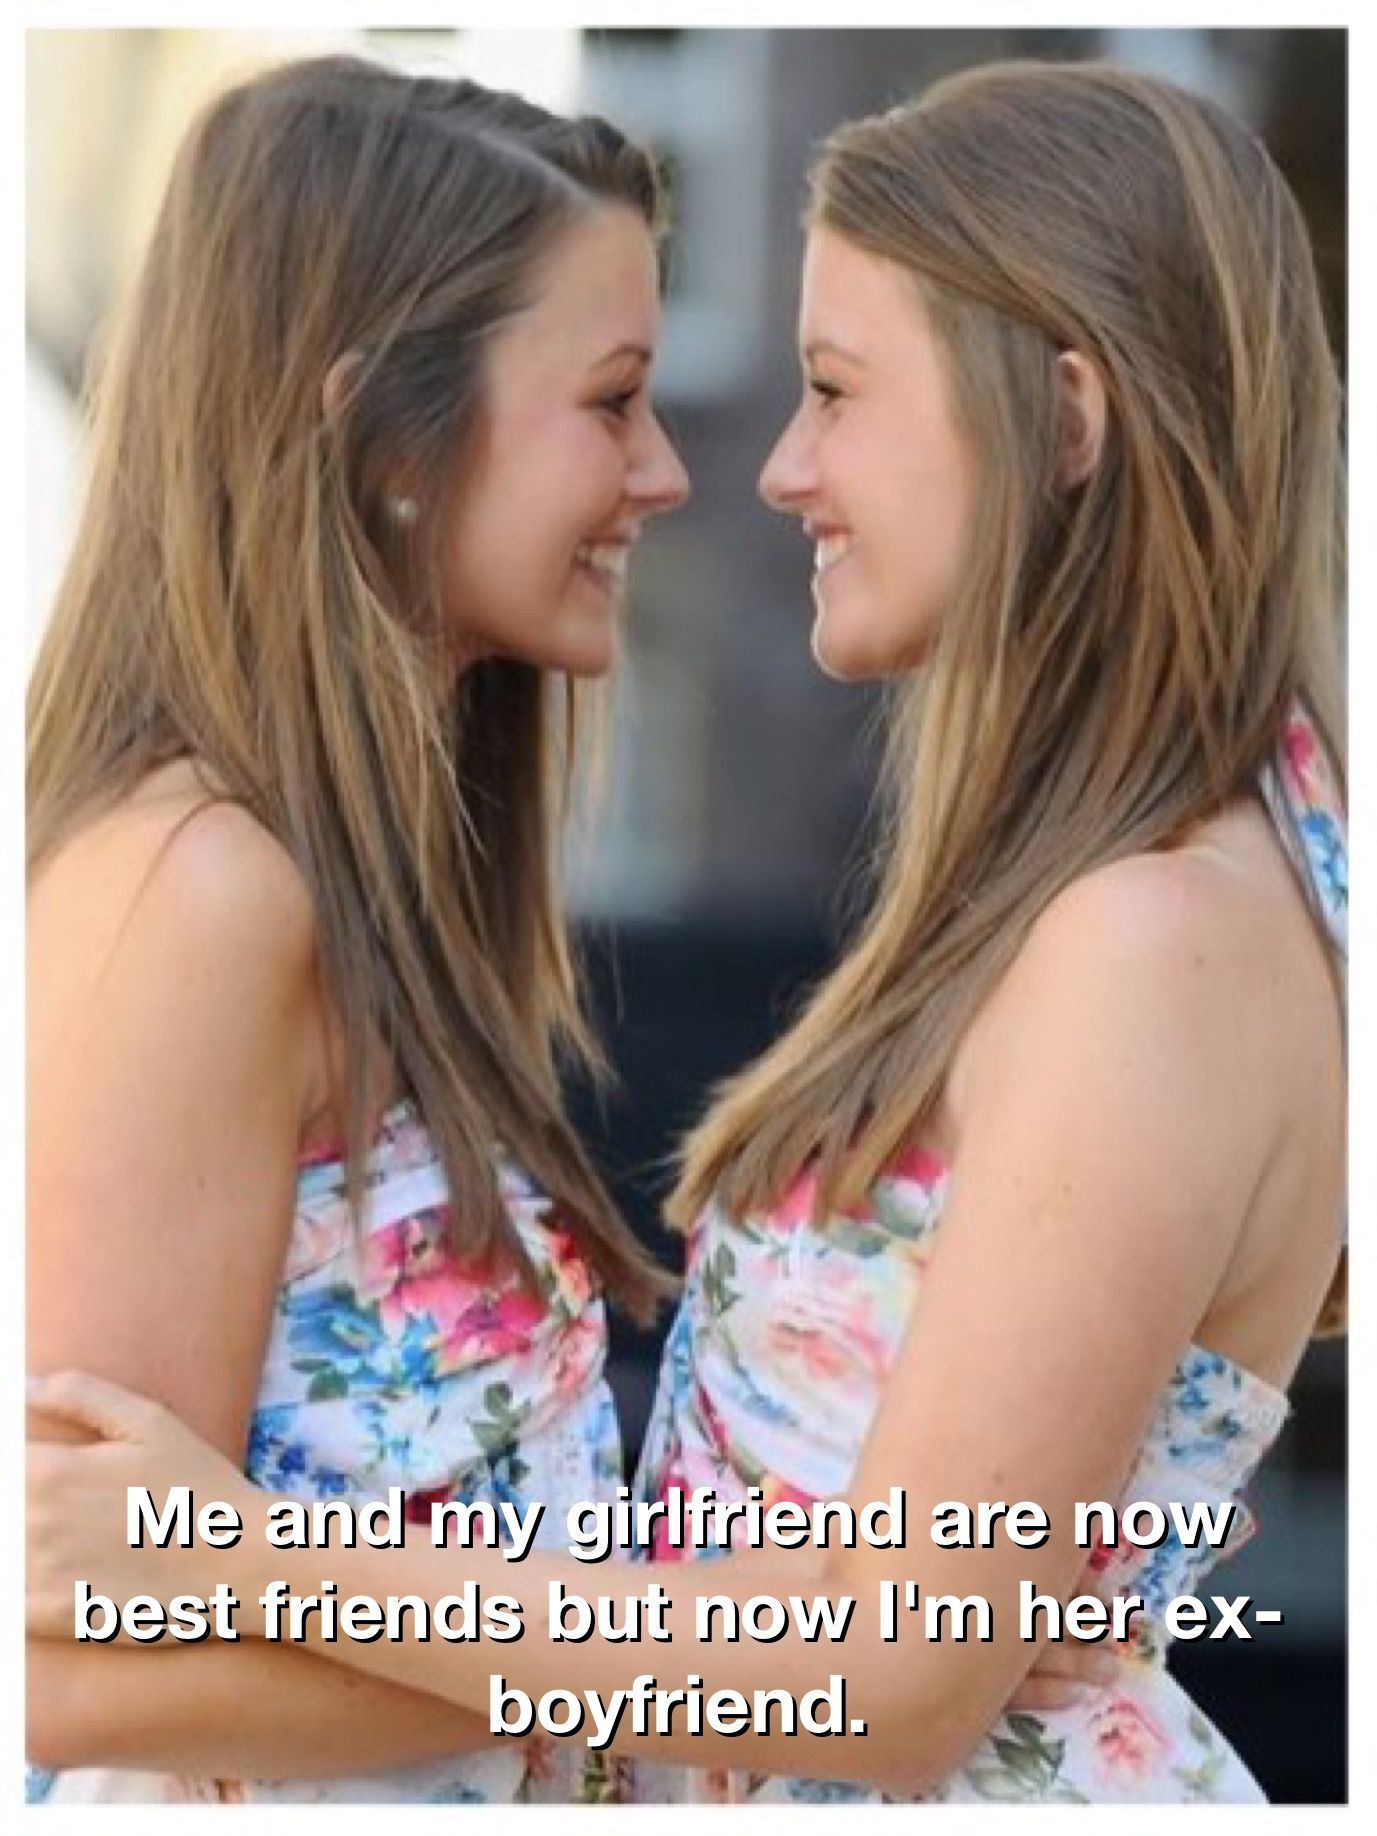 Pin by Normans Domain on TG Tales | Me as a girlfriend, Humiliation captions, Ex boyfriend